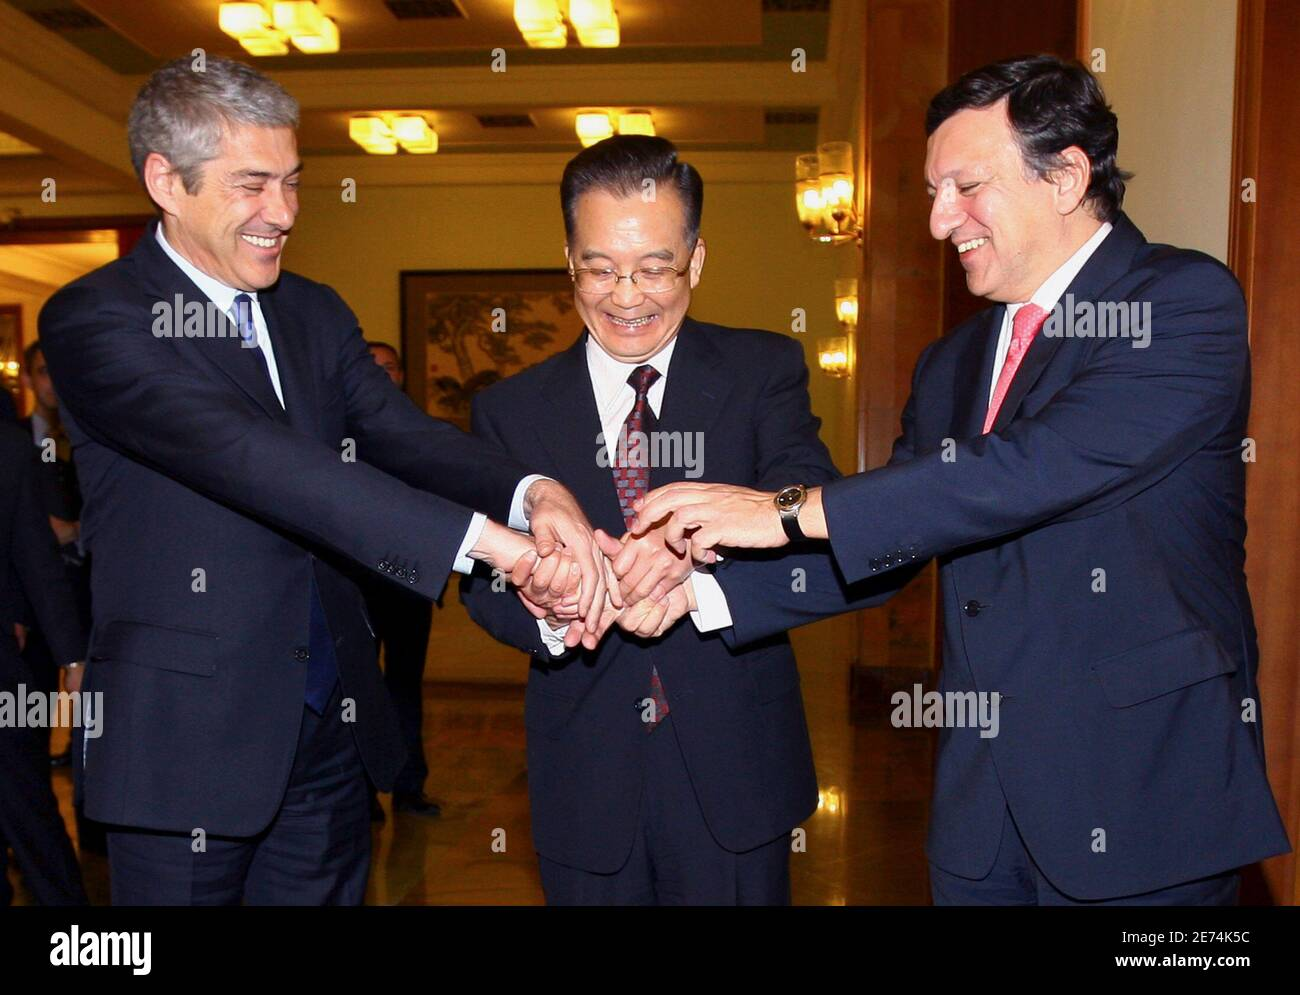 Portugal's Prime Minister and European Union President Jose Socrates (L) and European Commission President Jose Manuel Barroso (R) laugh as China's Premier Wen Jiabao (C) holds their hands together before their meeting in the Great Hall of the People in Beijing November 28, 2007.         REUTERS/David Gray    (CHINA) Banque D'Images